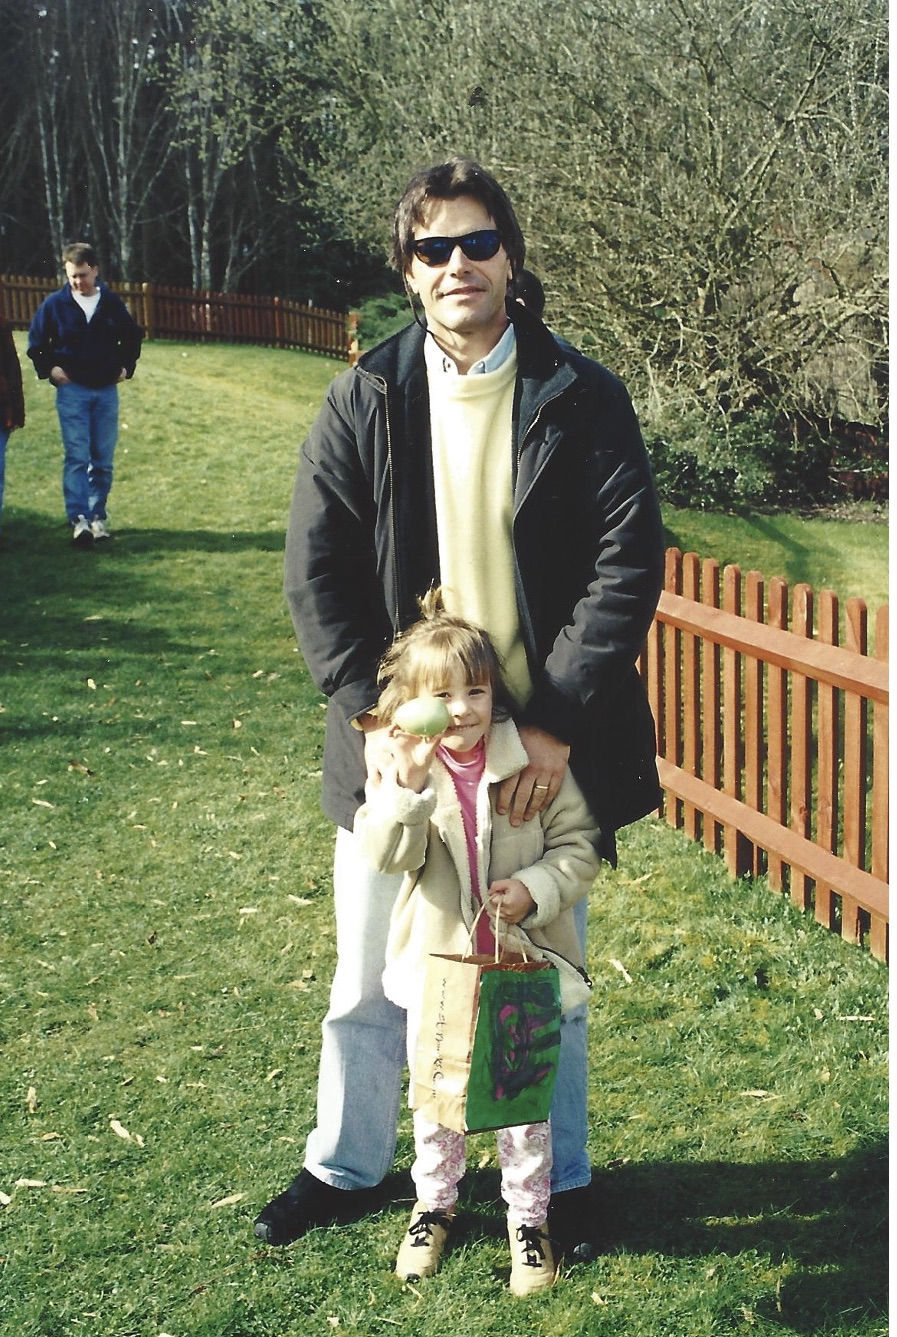 Caitlin and her dad when Caitlin was a kid